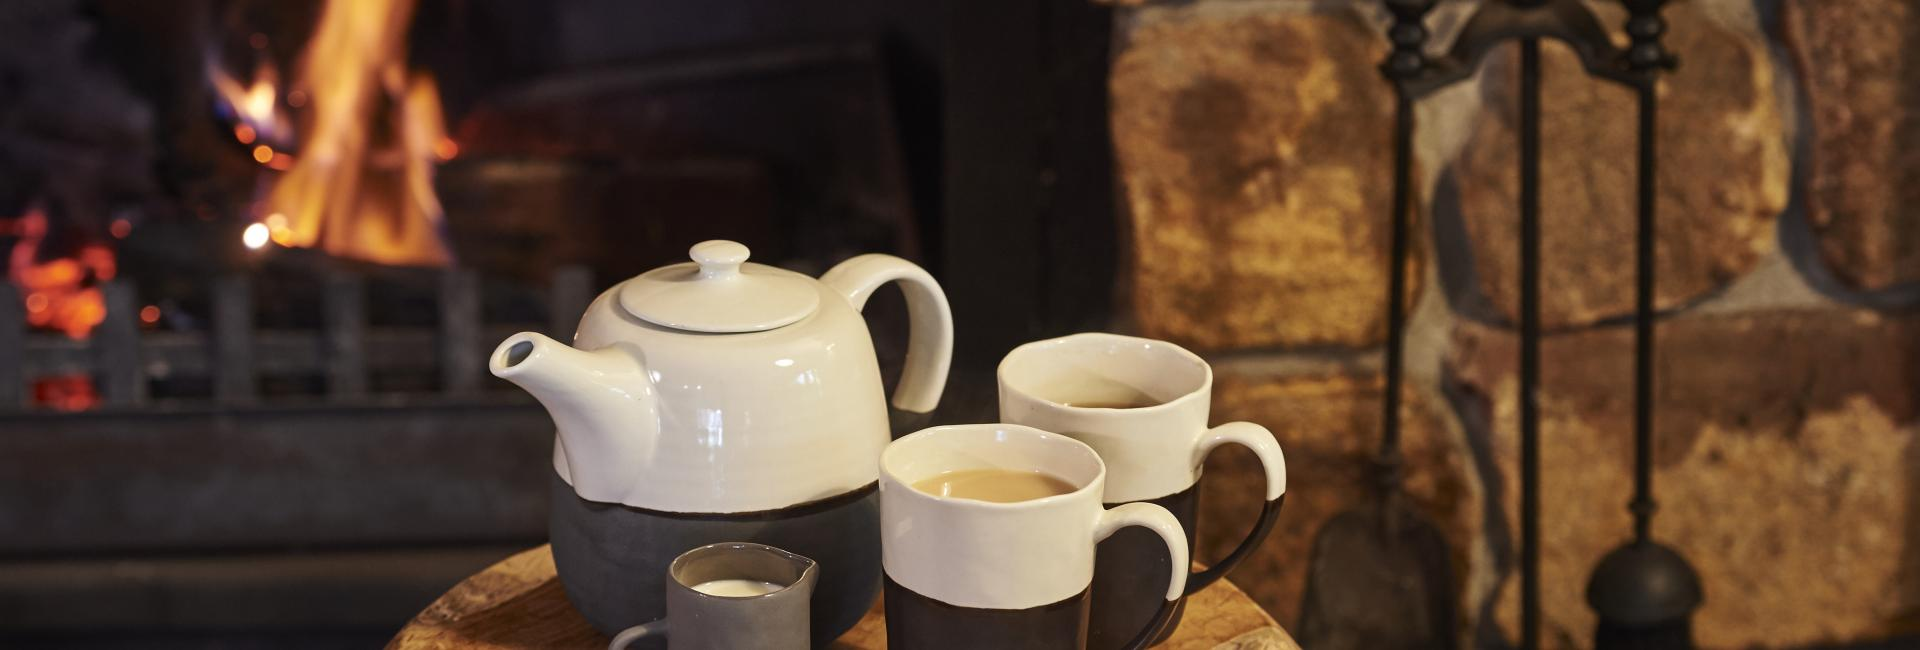 Tea pot and mugs by an open fire in Australias South West